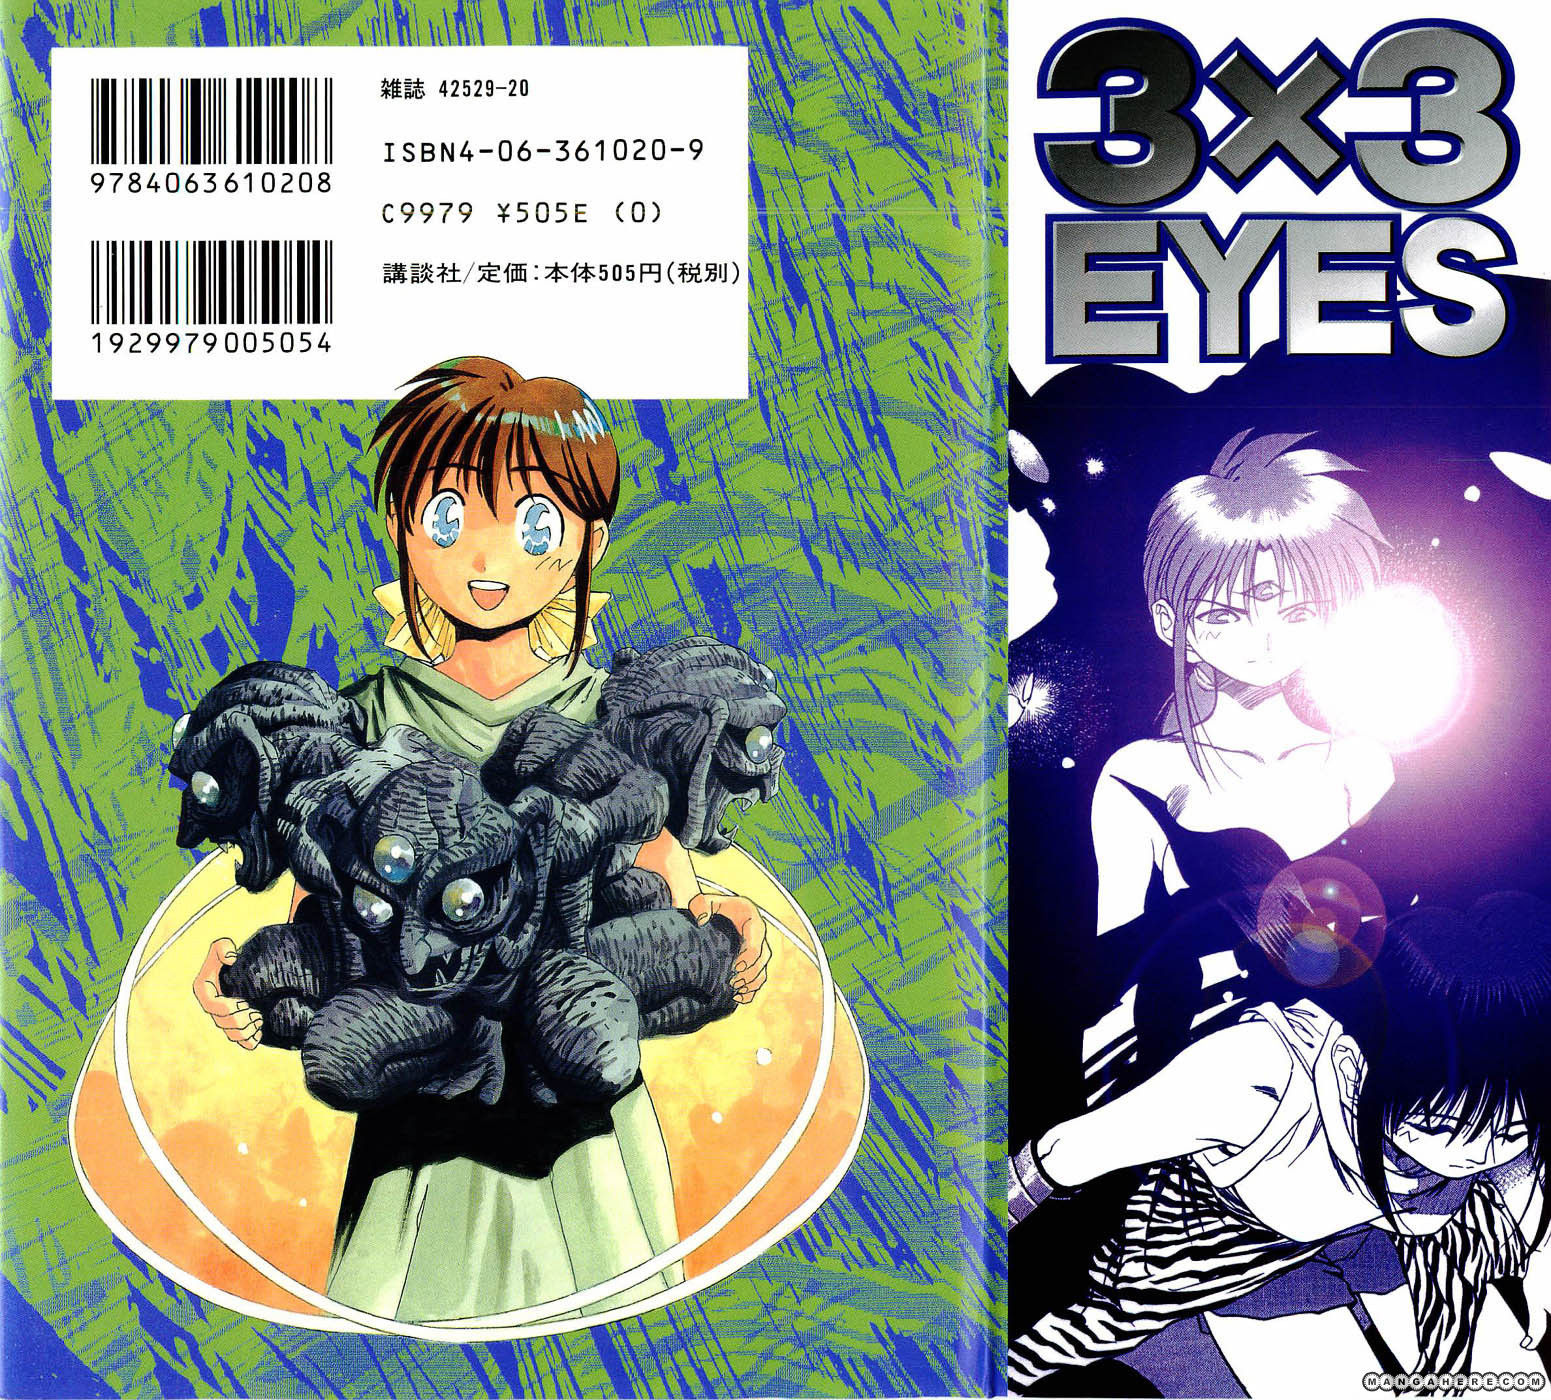 3x3 Eyes 1 Page 2